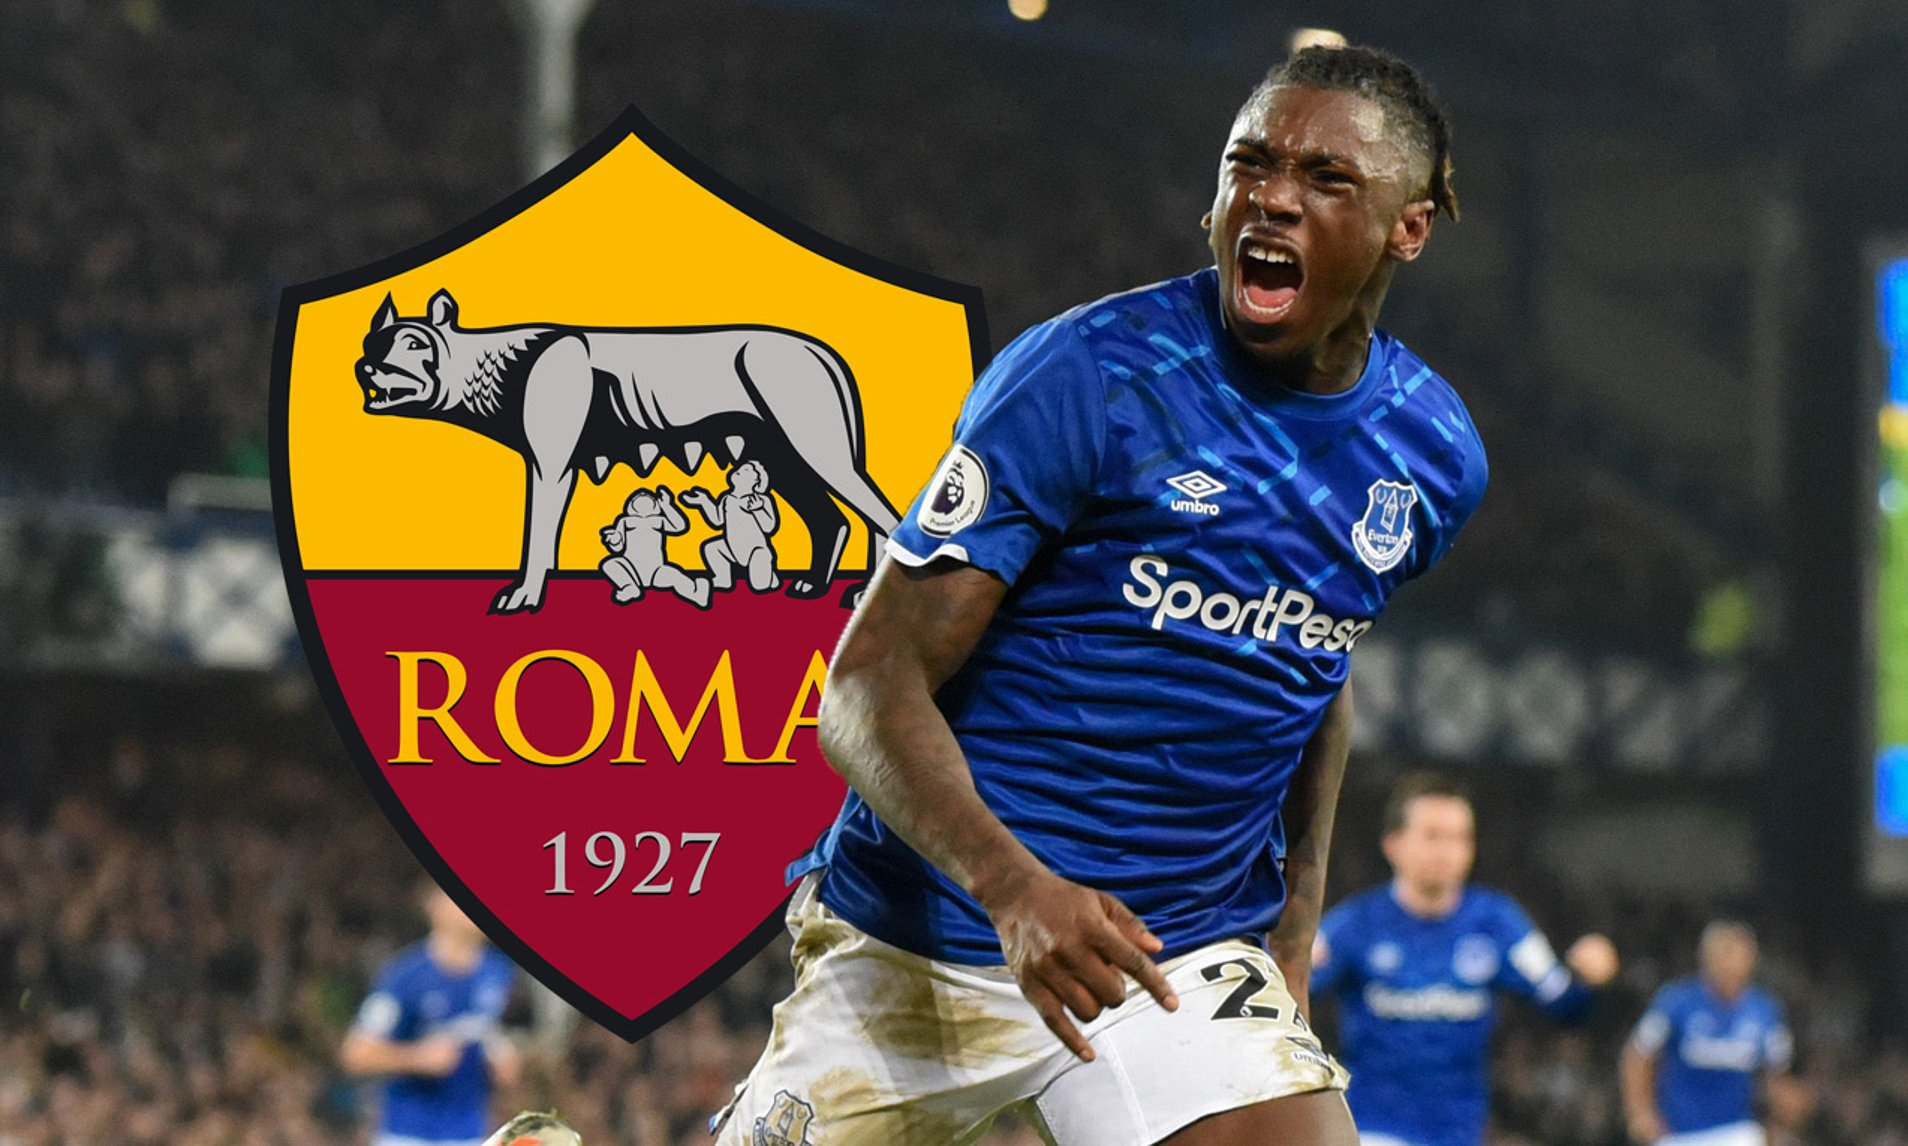 A Move To The Capital Why Moise Kean Needs Roma Move Part Two 818 Everything Roma